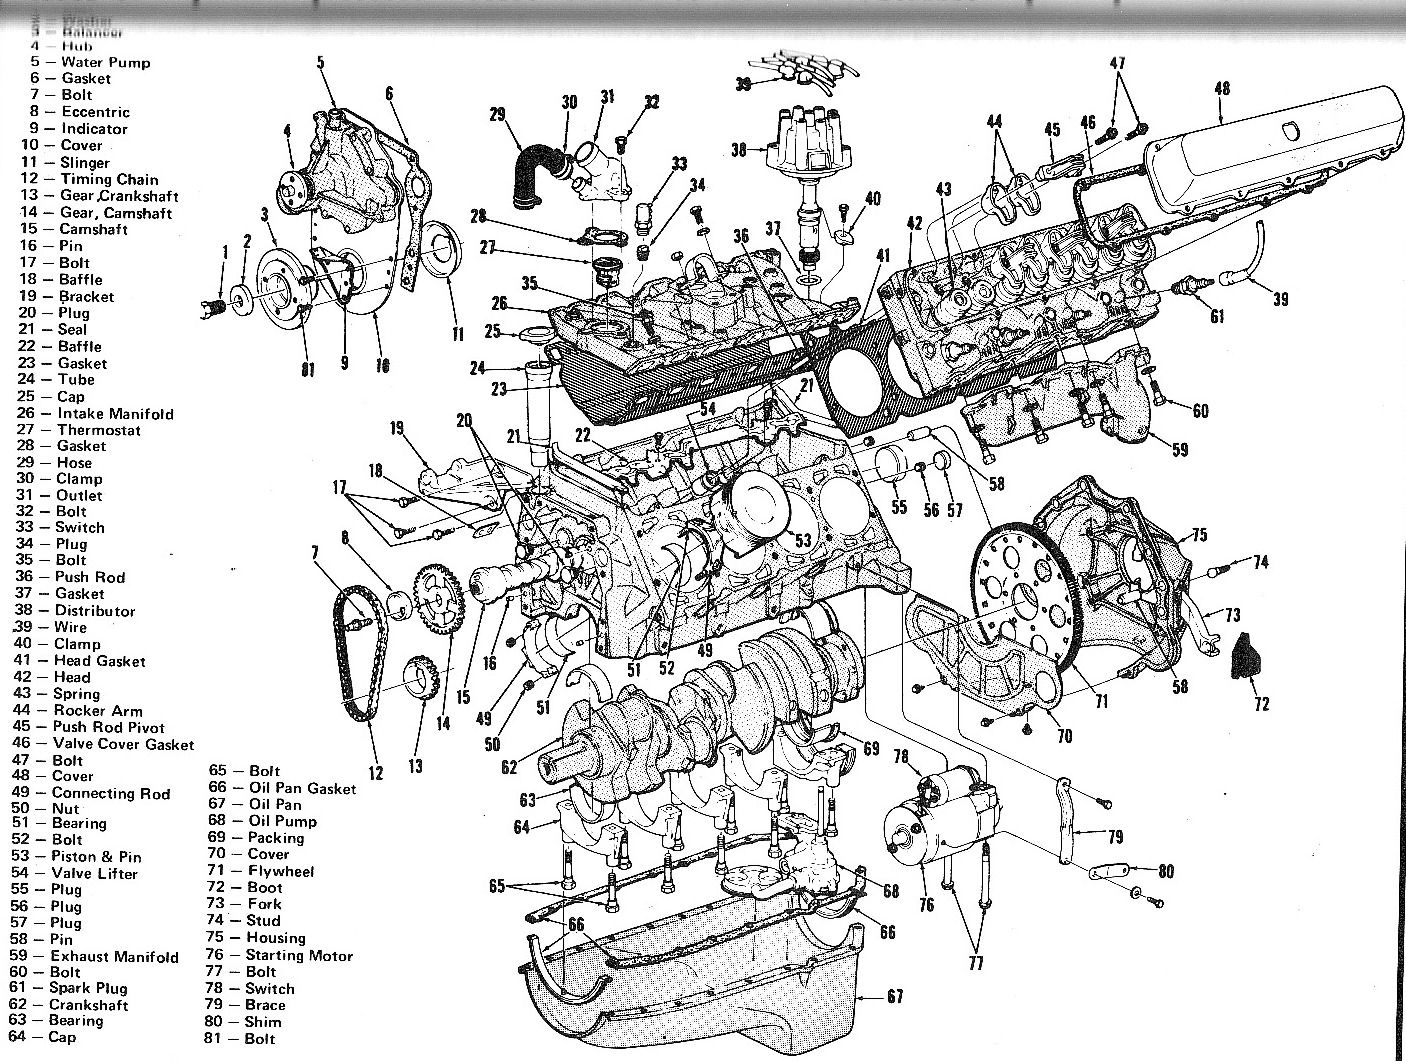 complete v 8 engine diagram engines transmissions 3 d lay out rh pinterest com 2006 mustang engine diagram 2007 mustang engine diagram